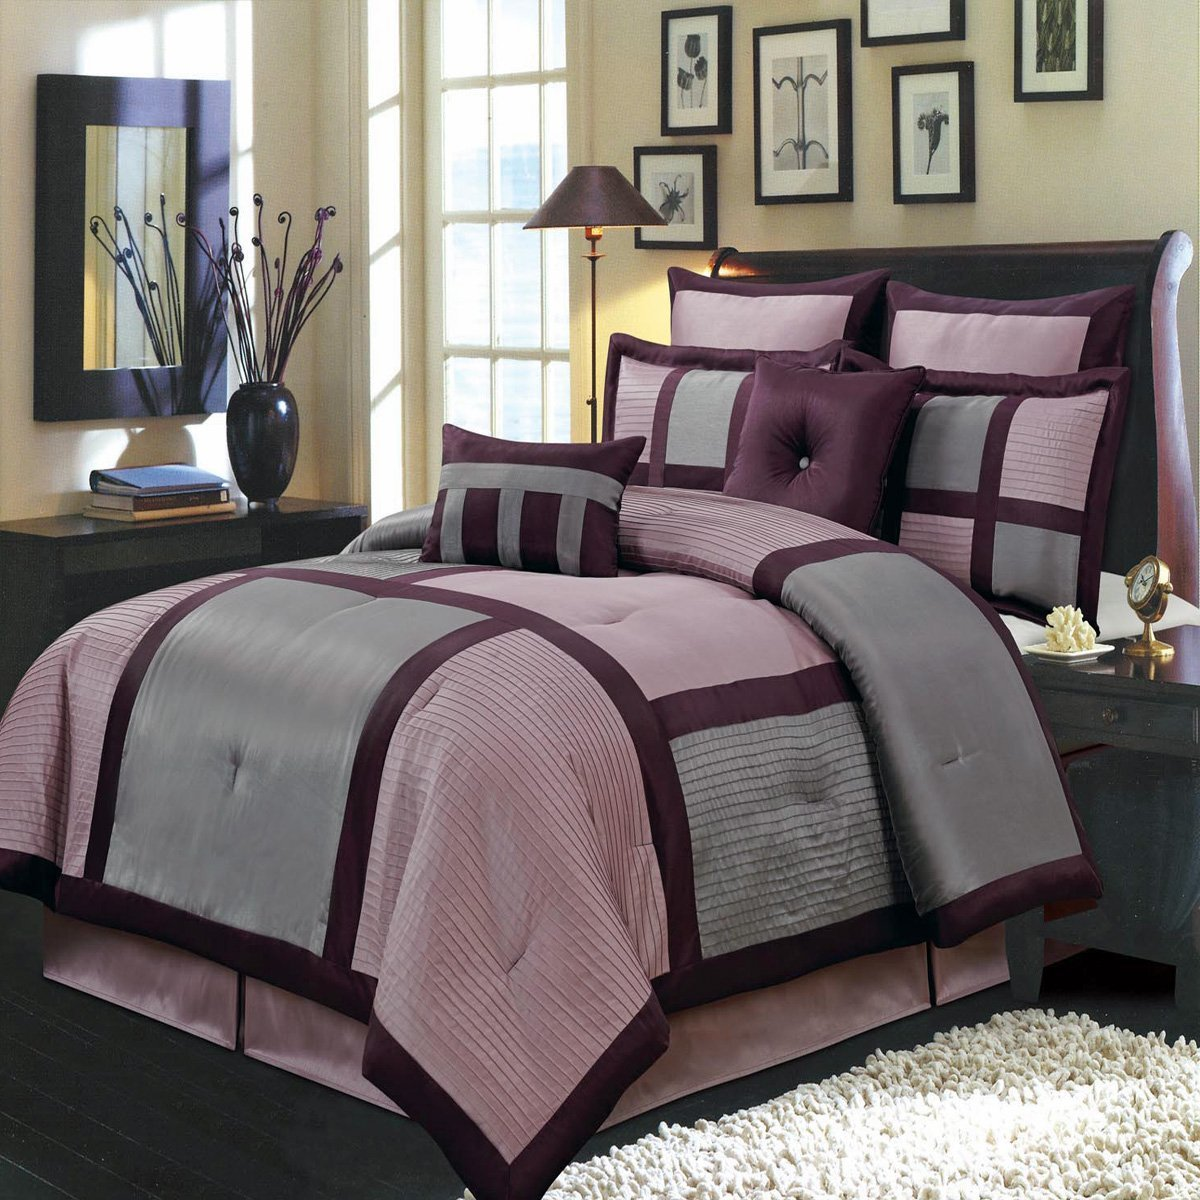 Royal Hotel Morgan Purple and Gray King size Luxury 8 piece comforter set includes Comforter, bed skirt, pillow shams, decorative pillows